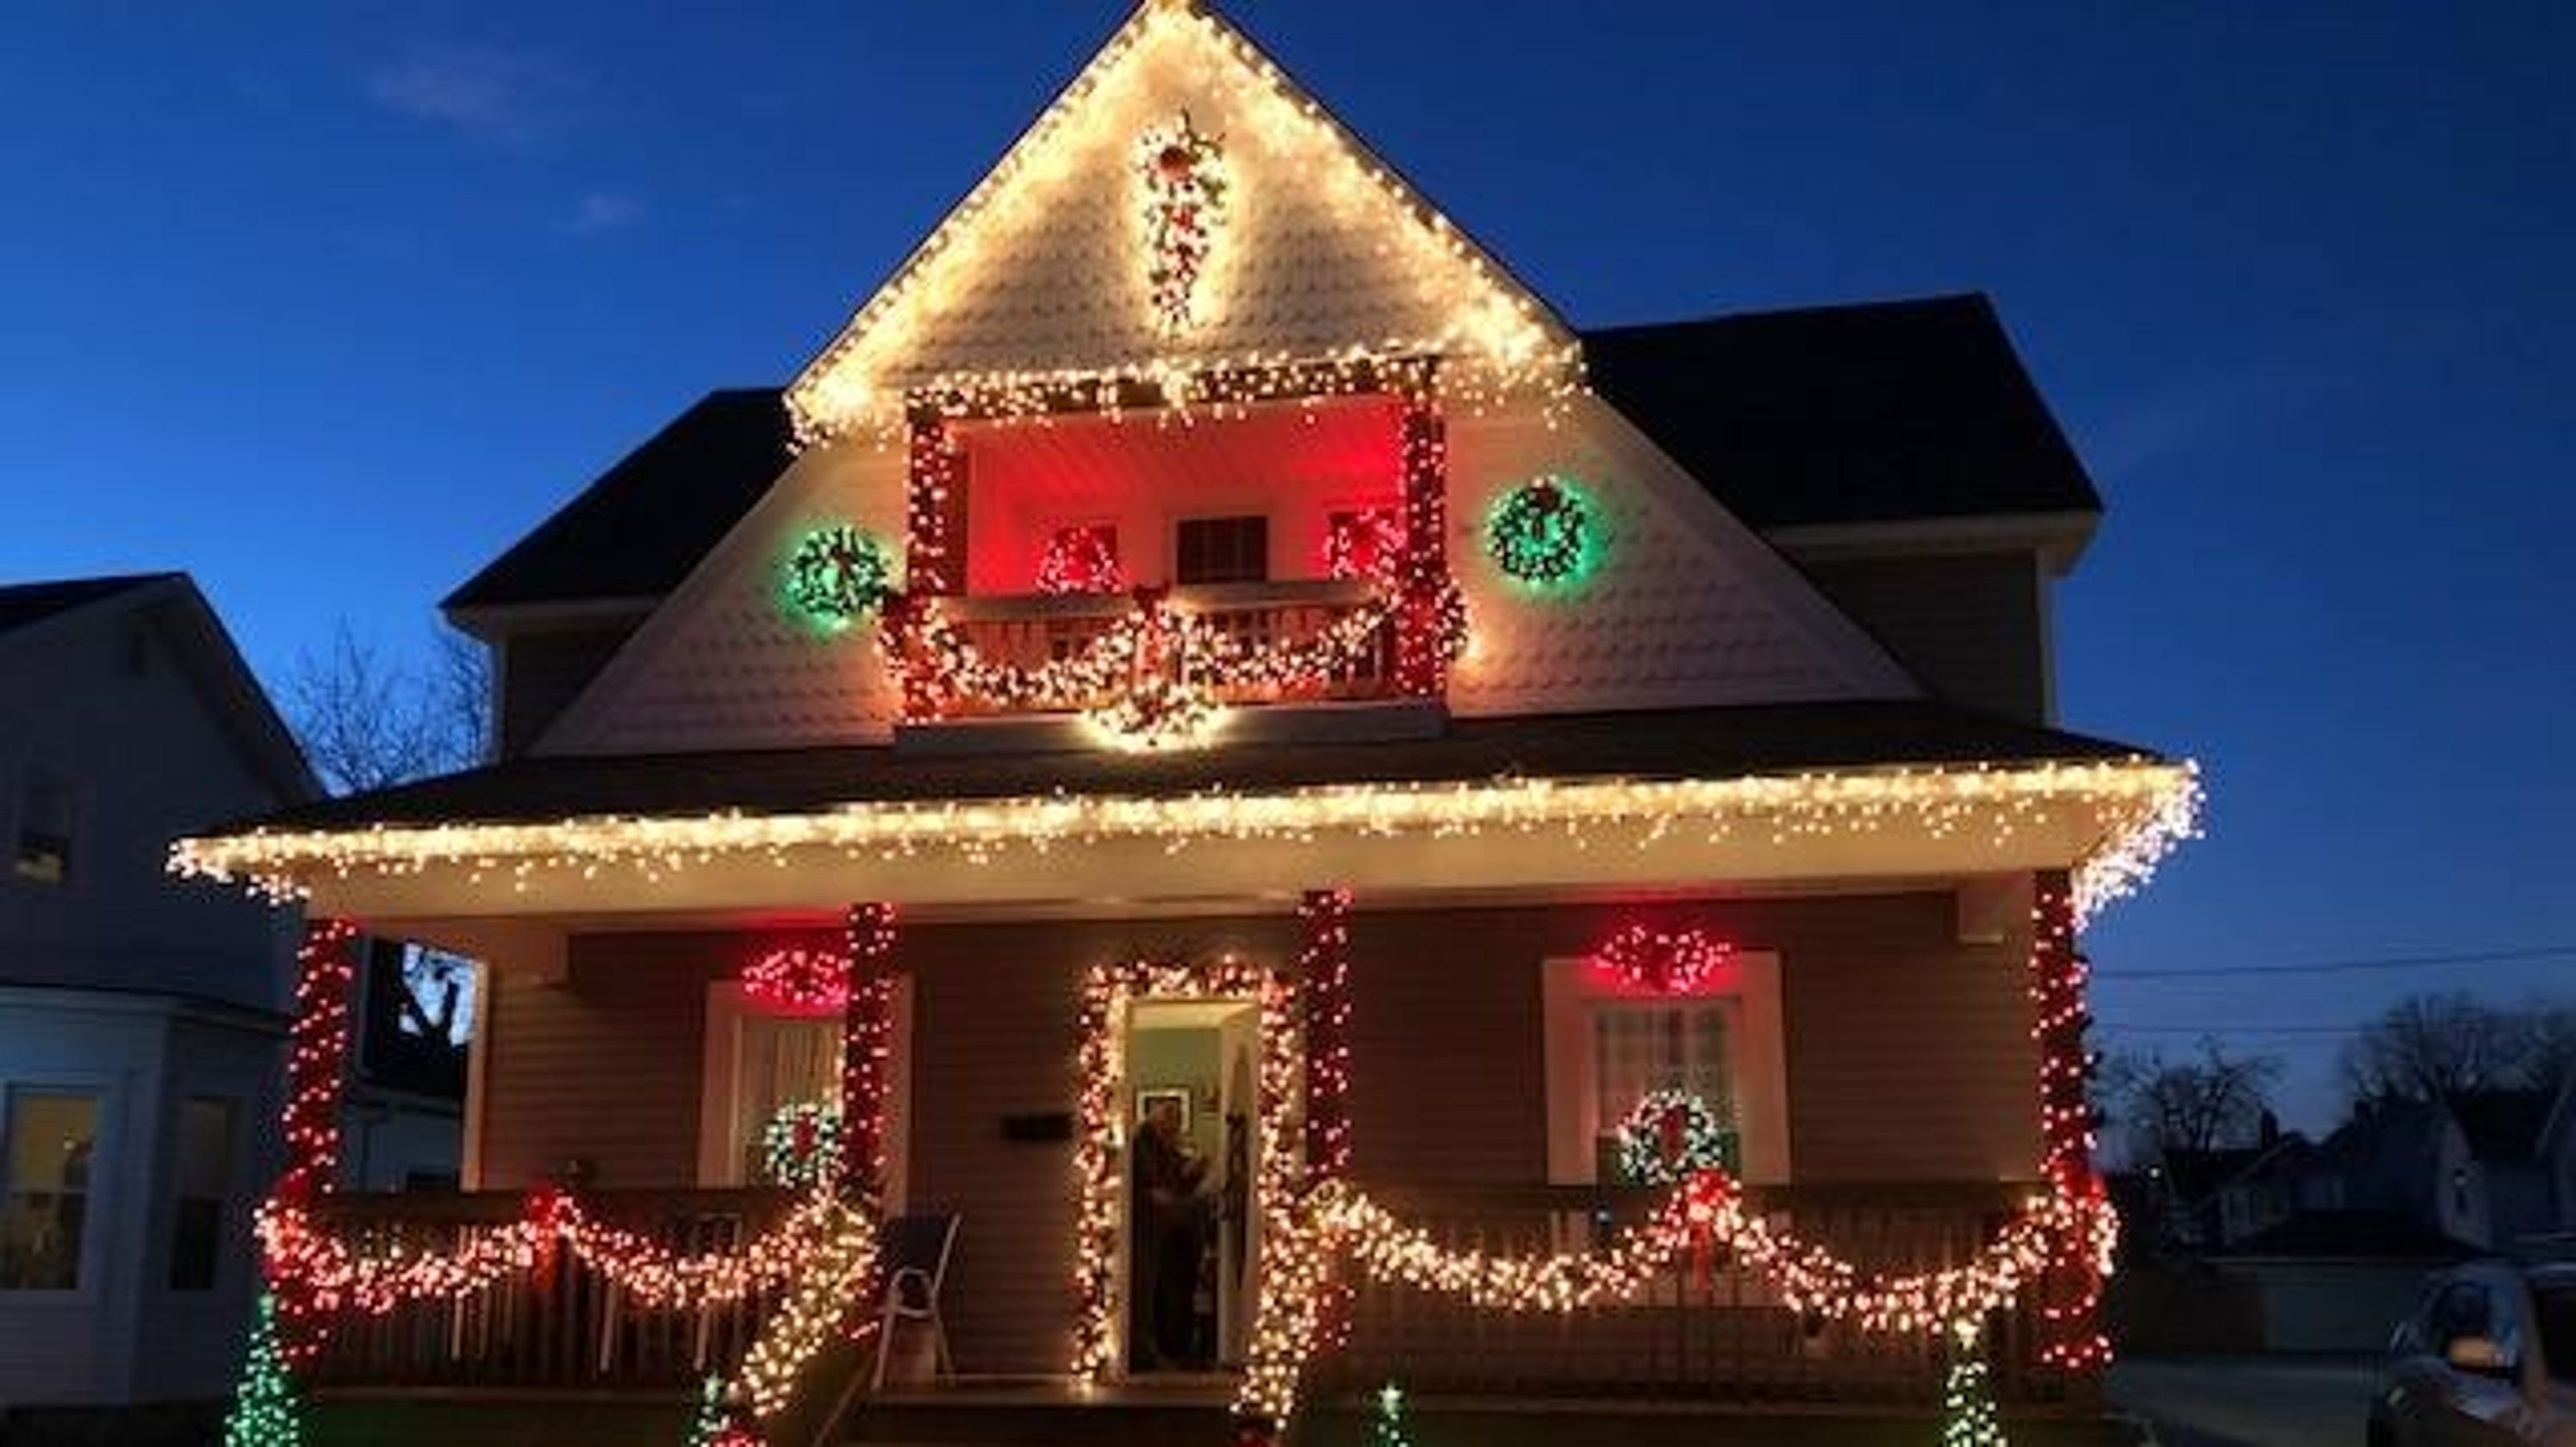 Community Roundup: Winners announced for holiday home, lawn decorations